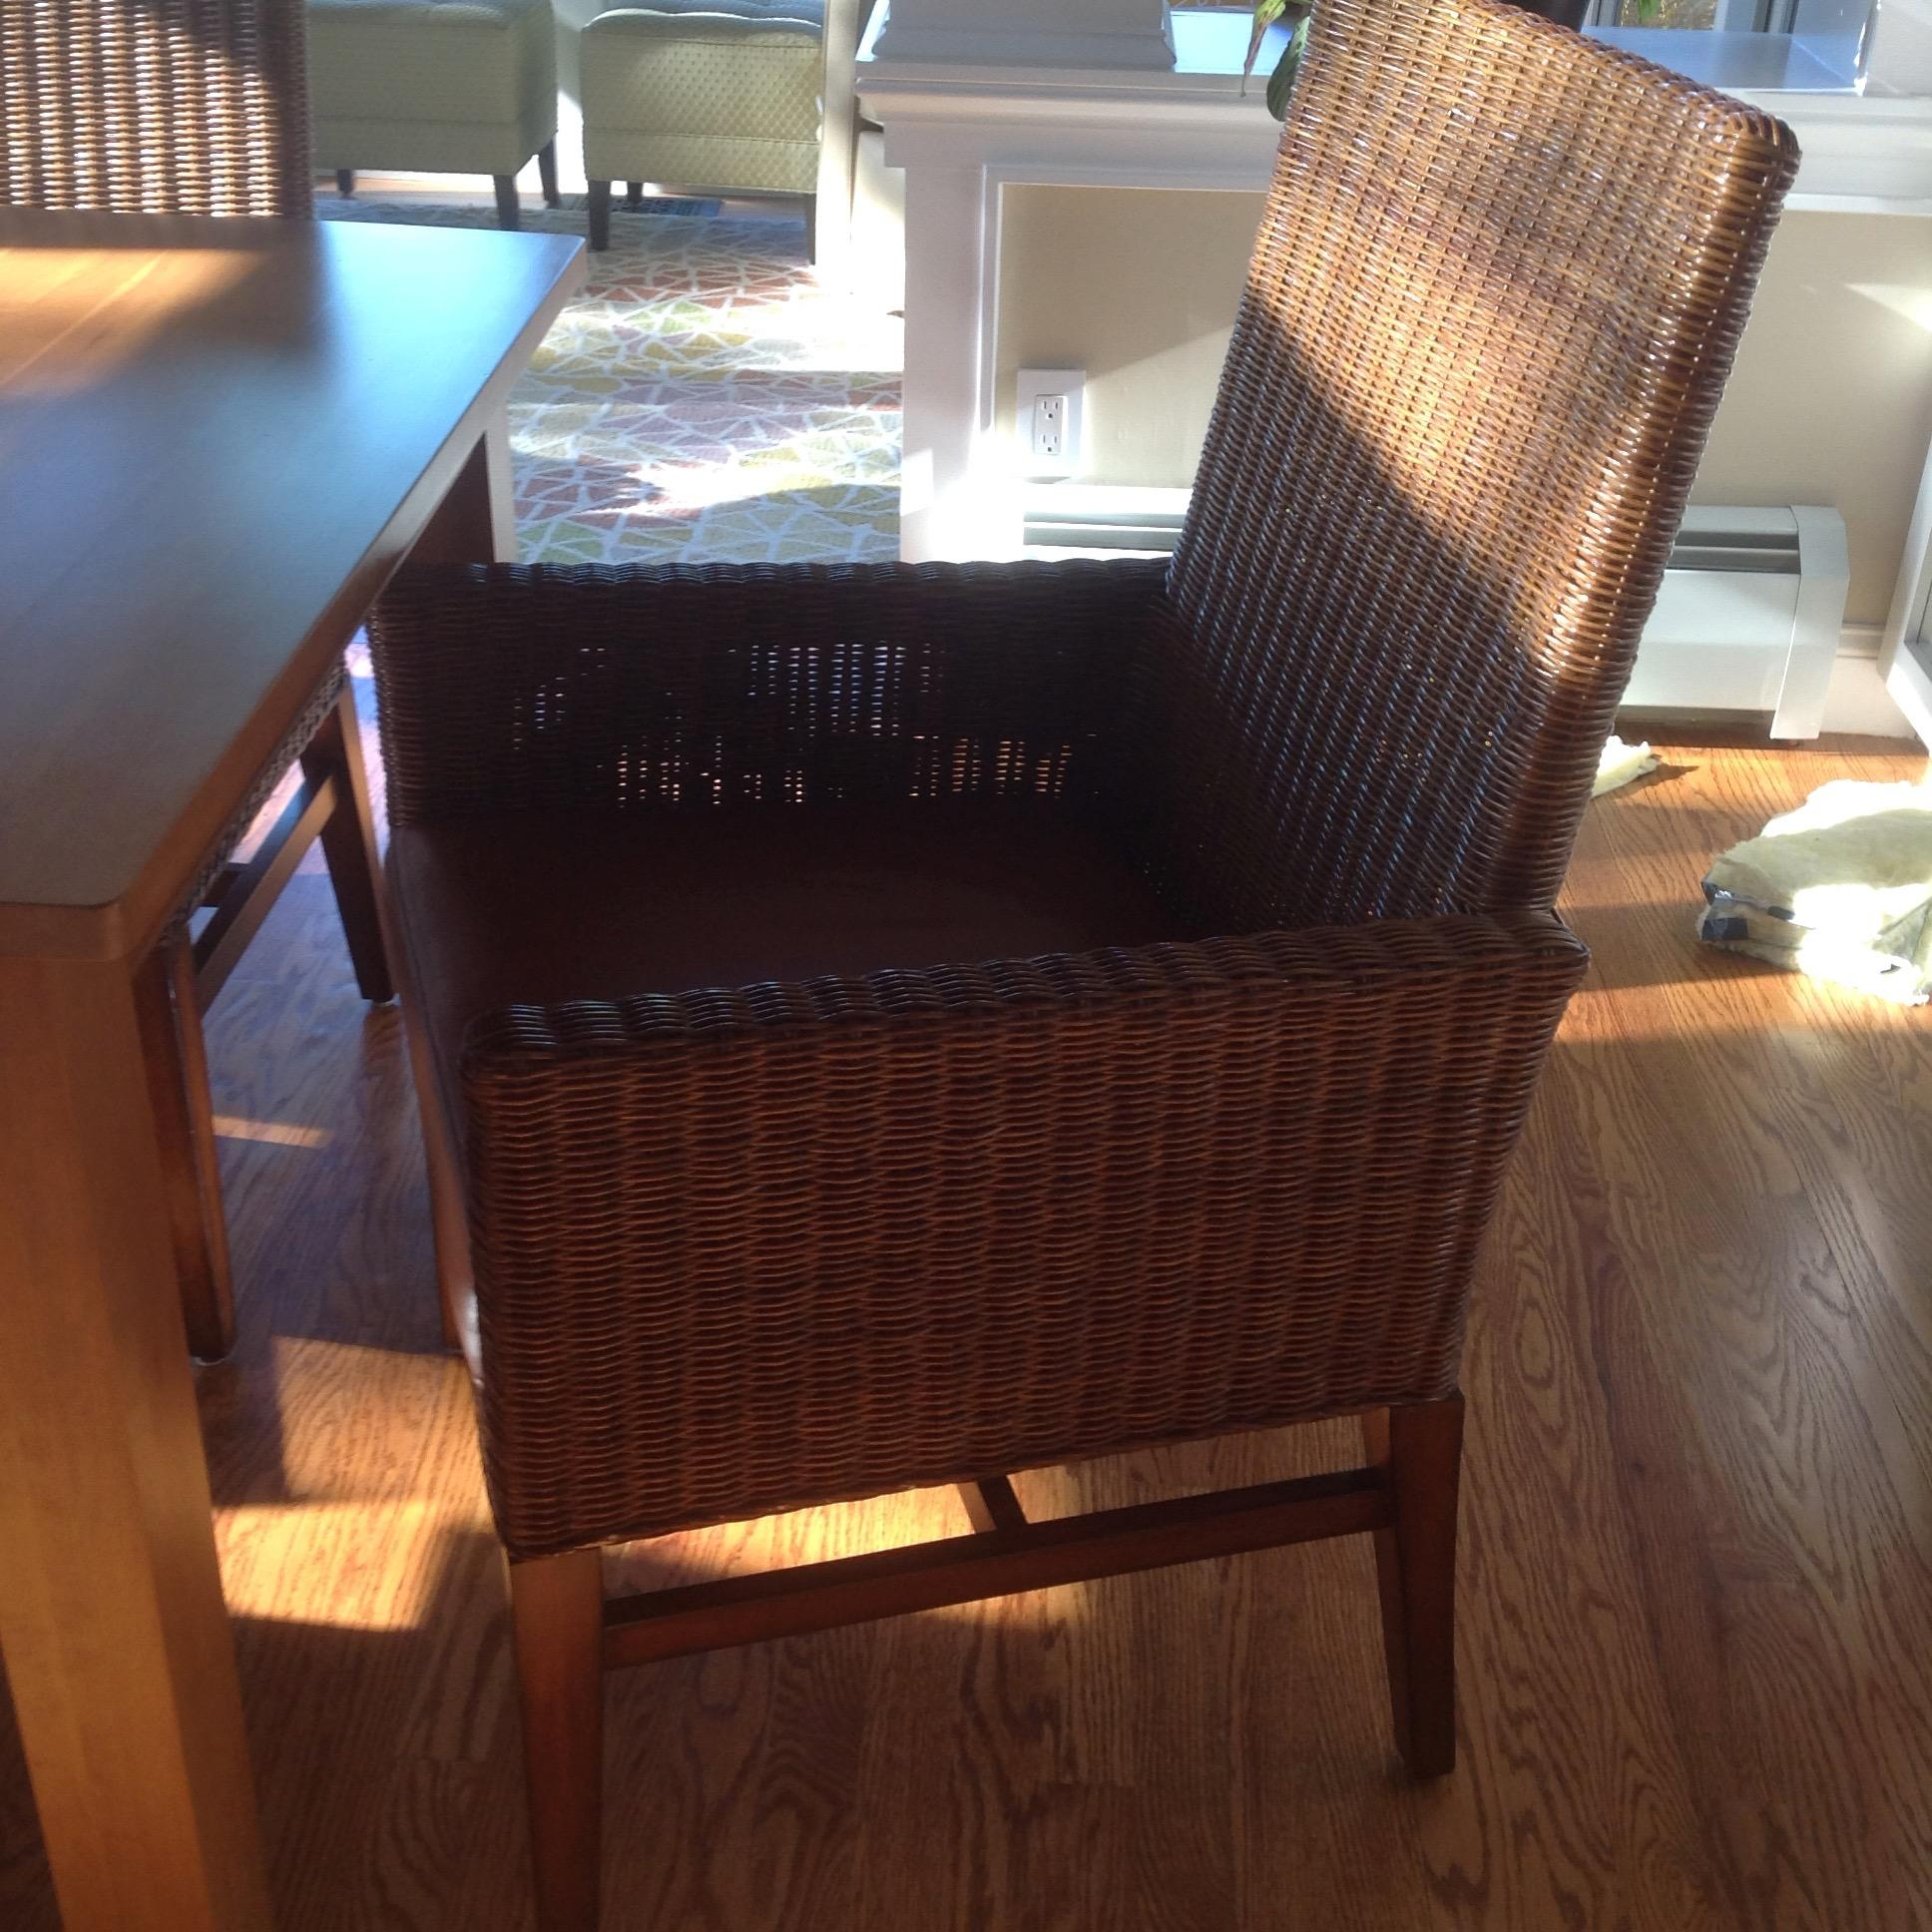 Ethan Allen Parsons Table With 6 Woven Wicker Chairs  : 2b9d7778 0b5f 43c1 8ff5 158a08bac638aspectfitampwidth640ampheight640 from www.chairish.com size 640 x 640 jpeg 65kB